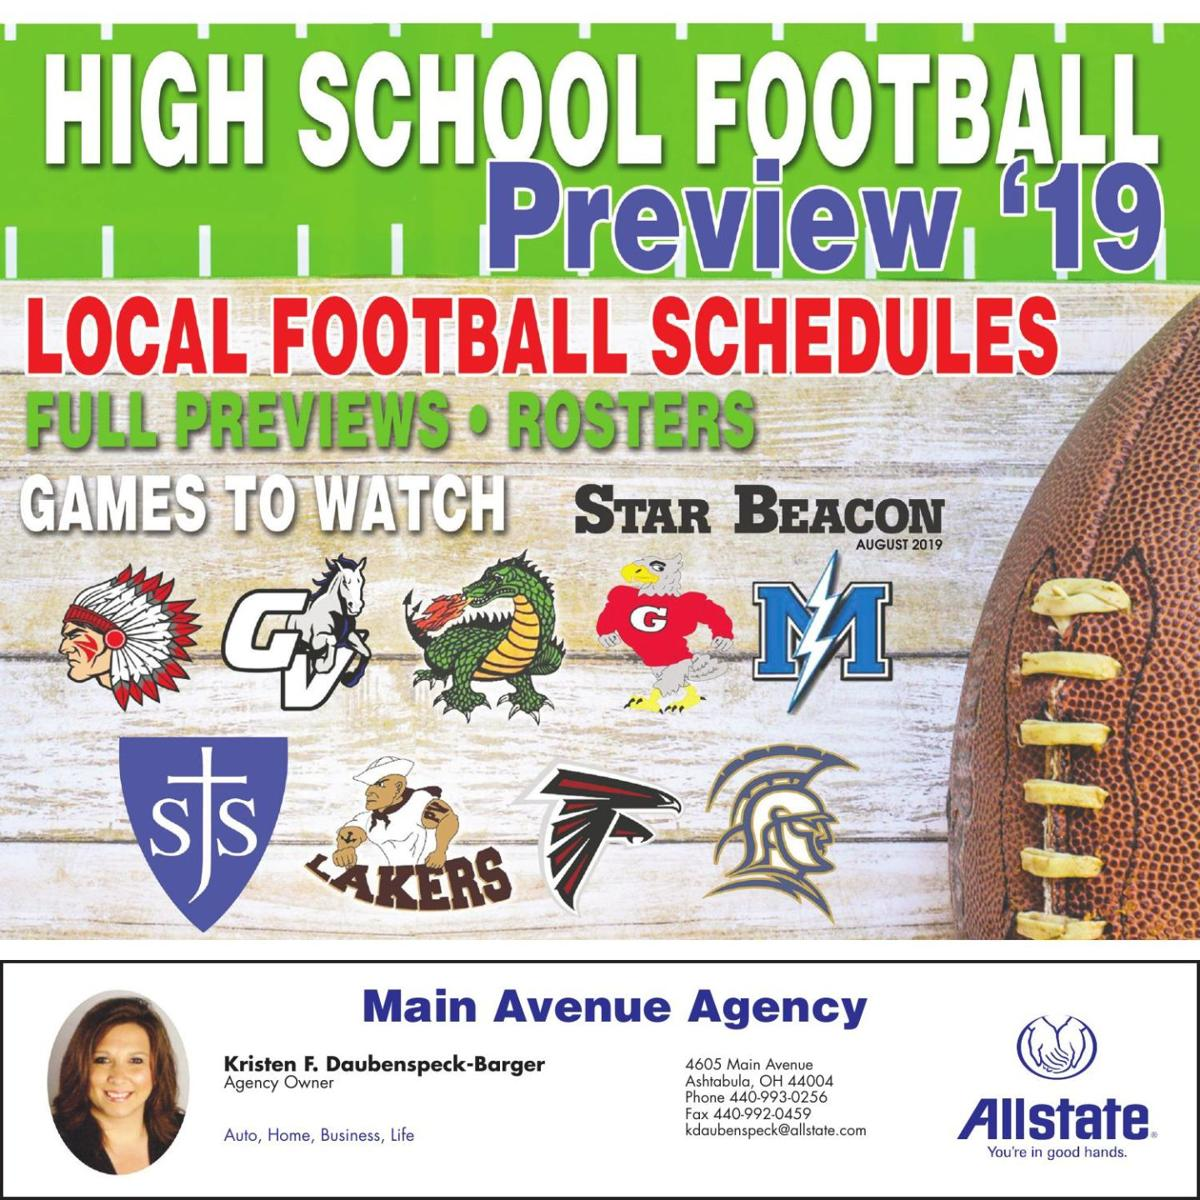 2019 HIGH SCHOOL FOOTBALL KICKOFF